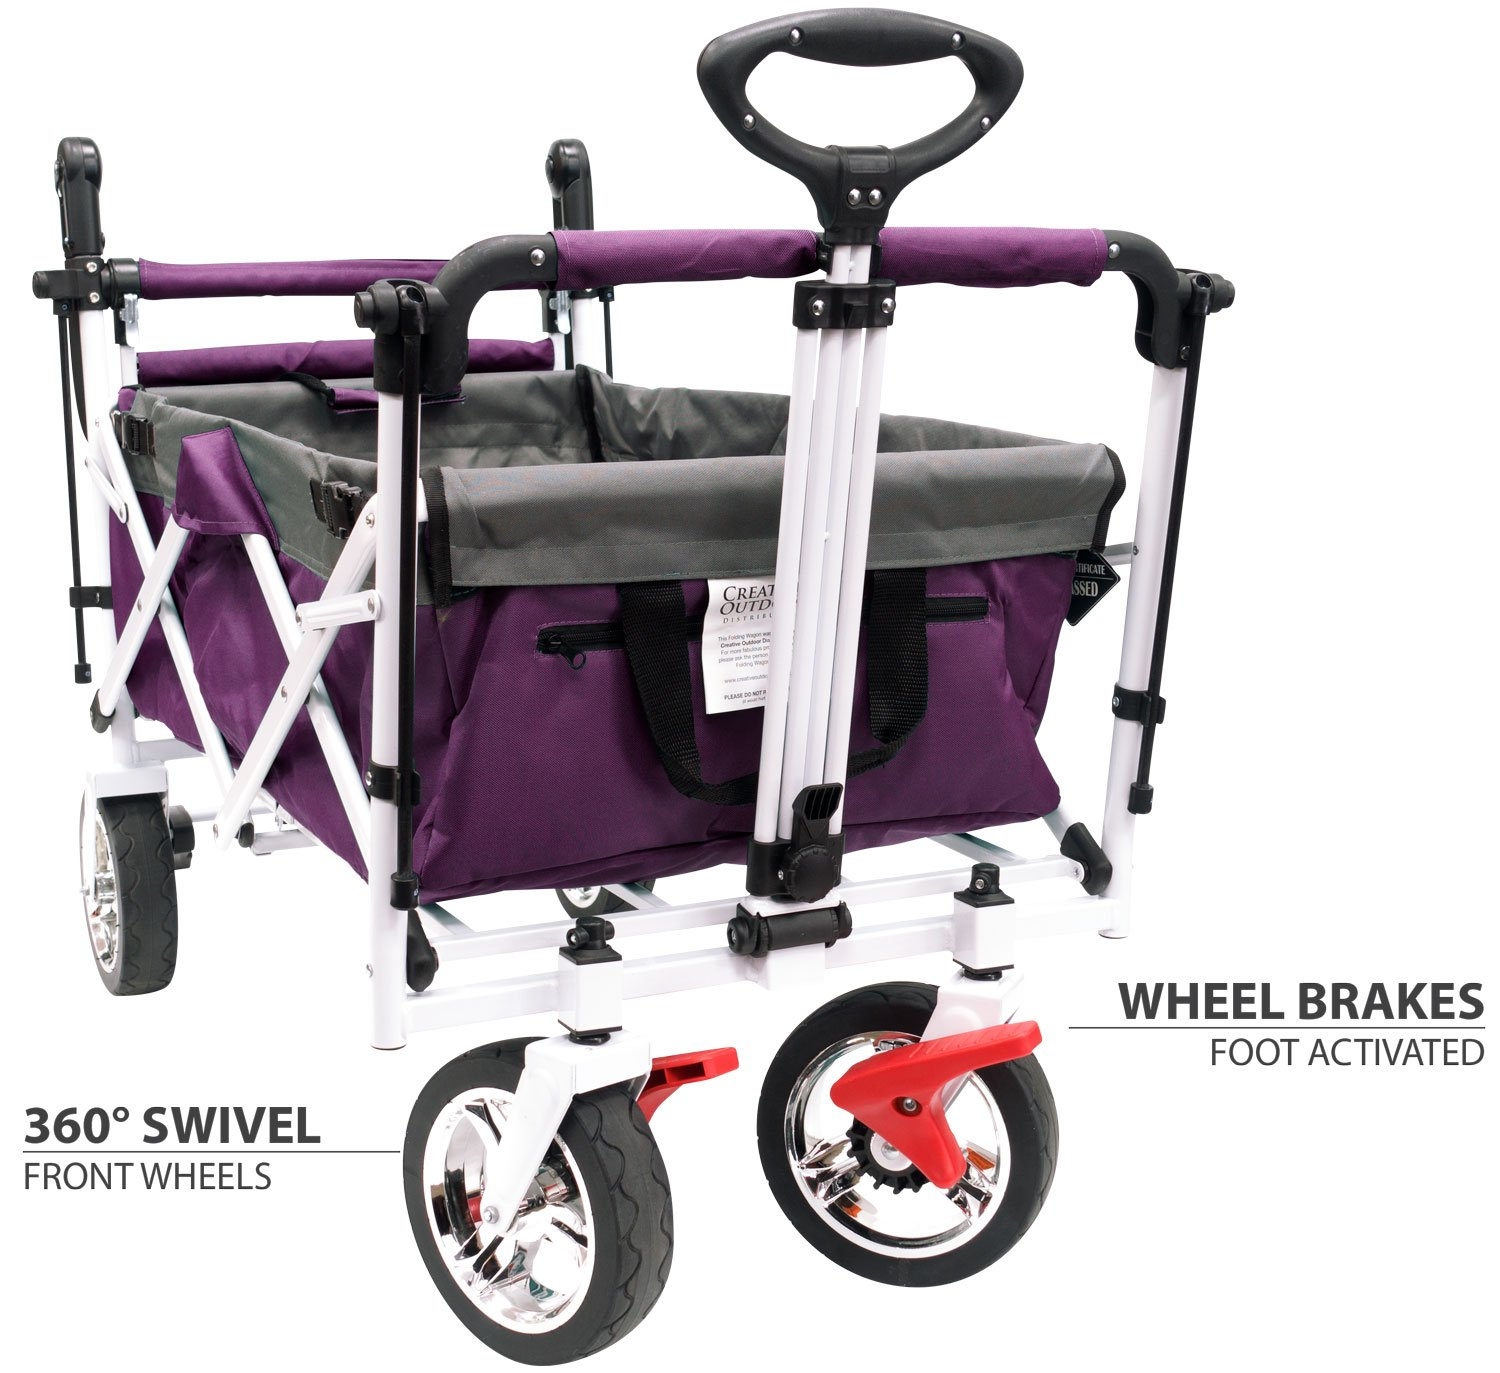 Creative Outdoor Push Pull Collapsible Folding Wagon Stroller2